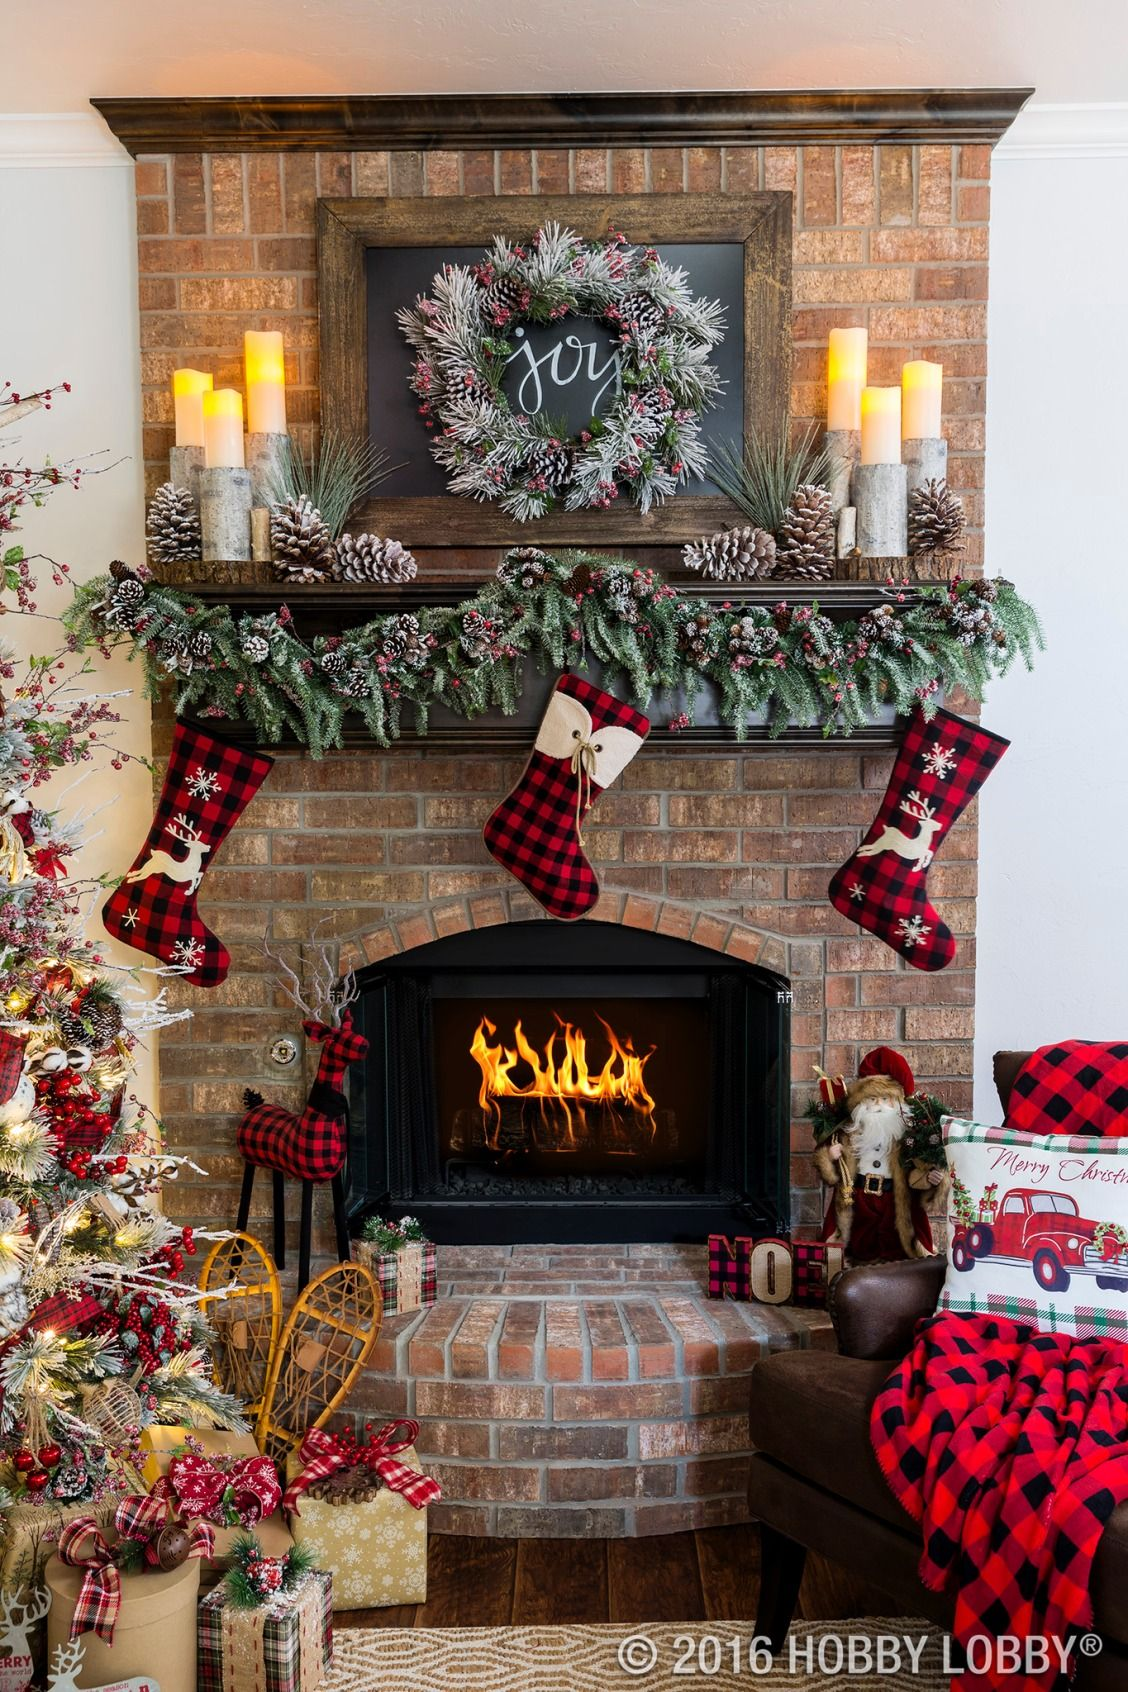 cozy cabin charm meets traditional holiday by coupling warm and rustic accent pieces with elegant christmas decor